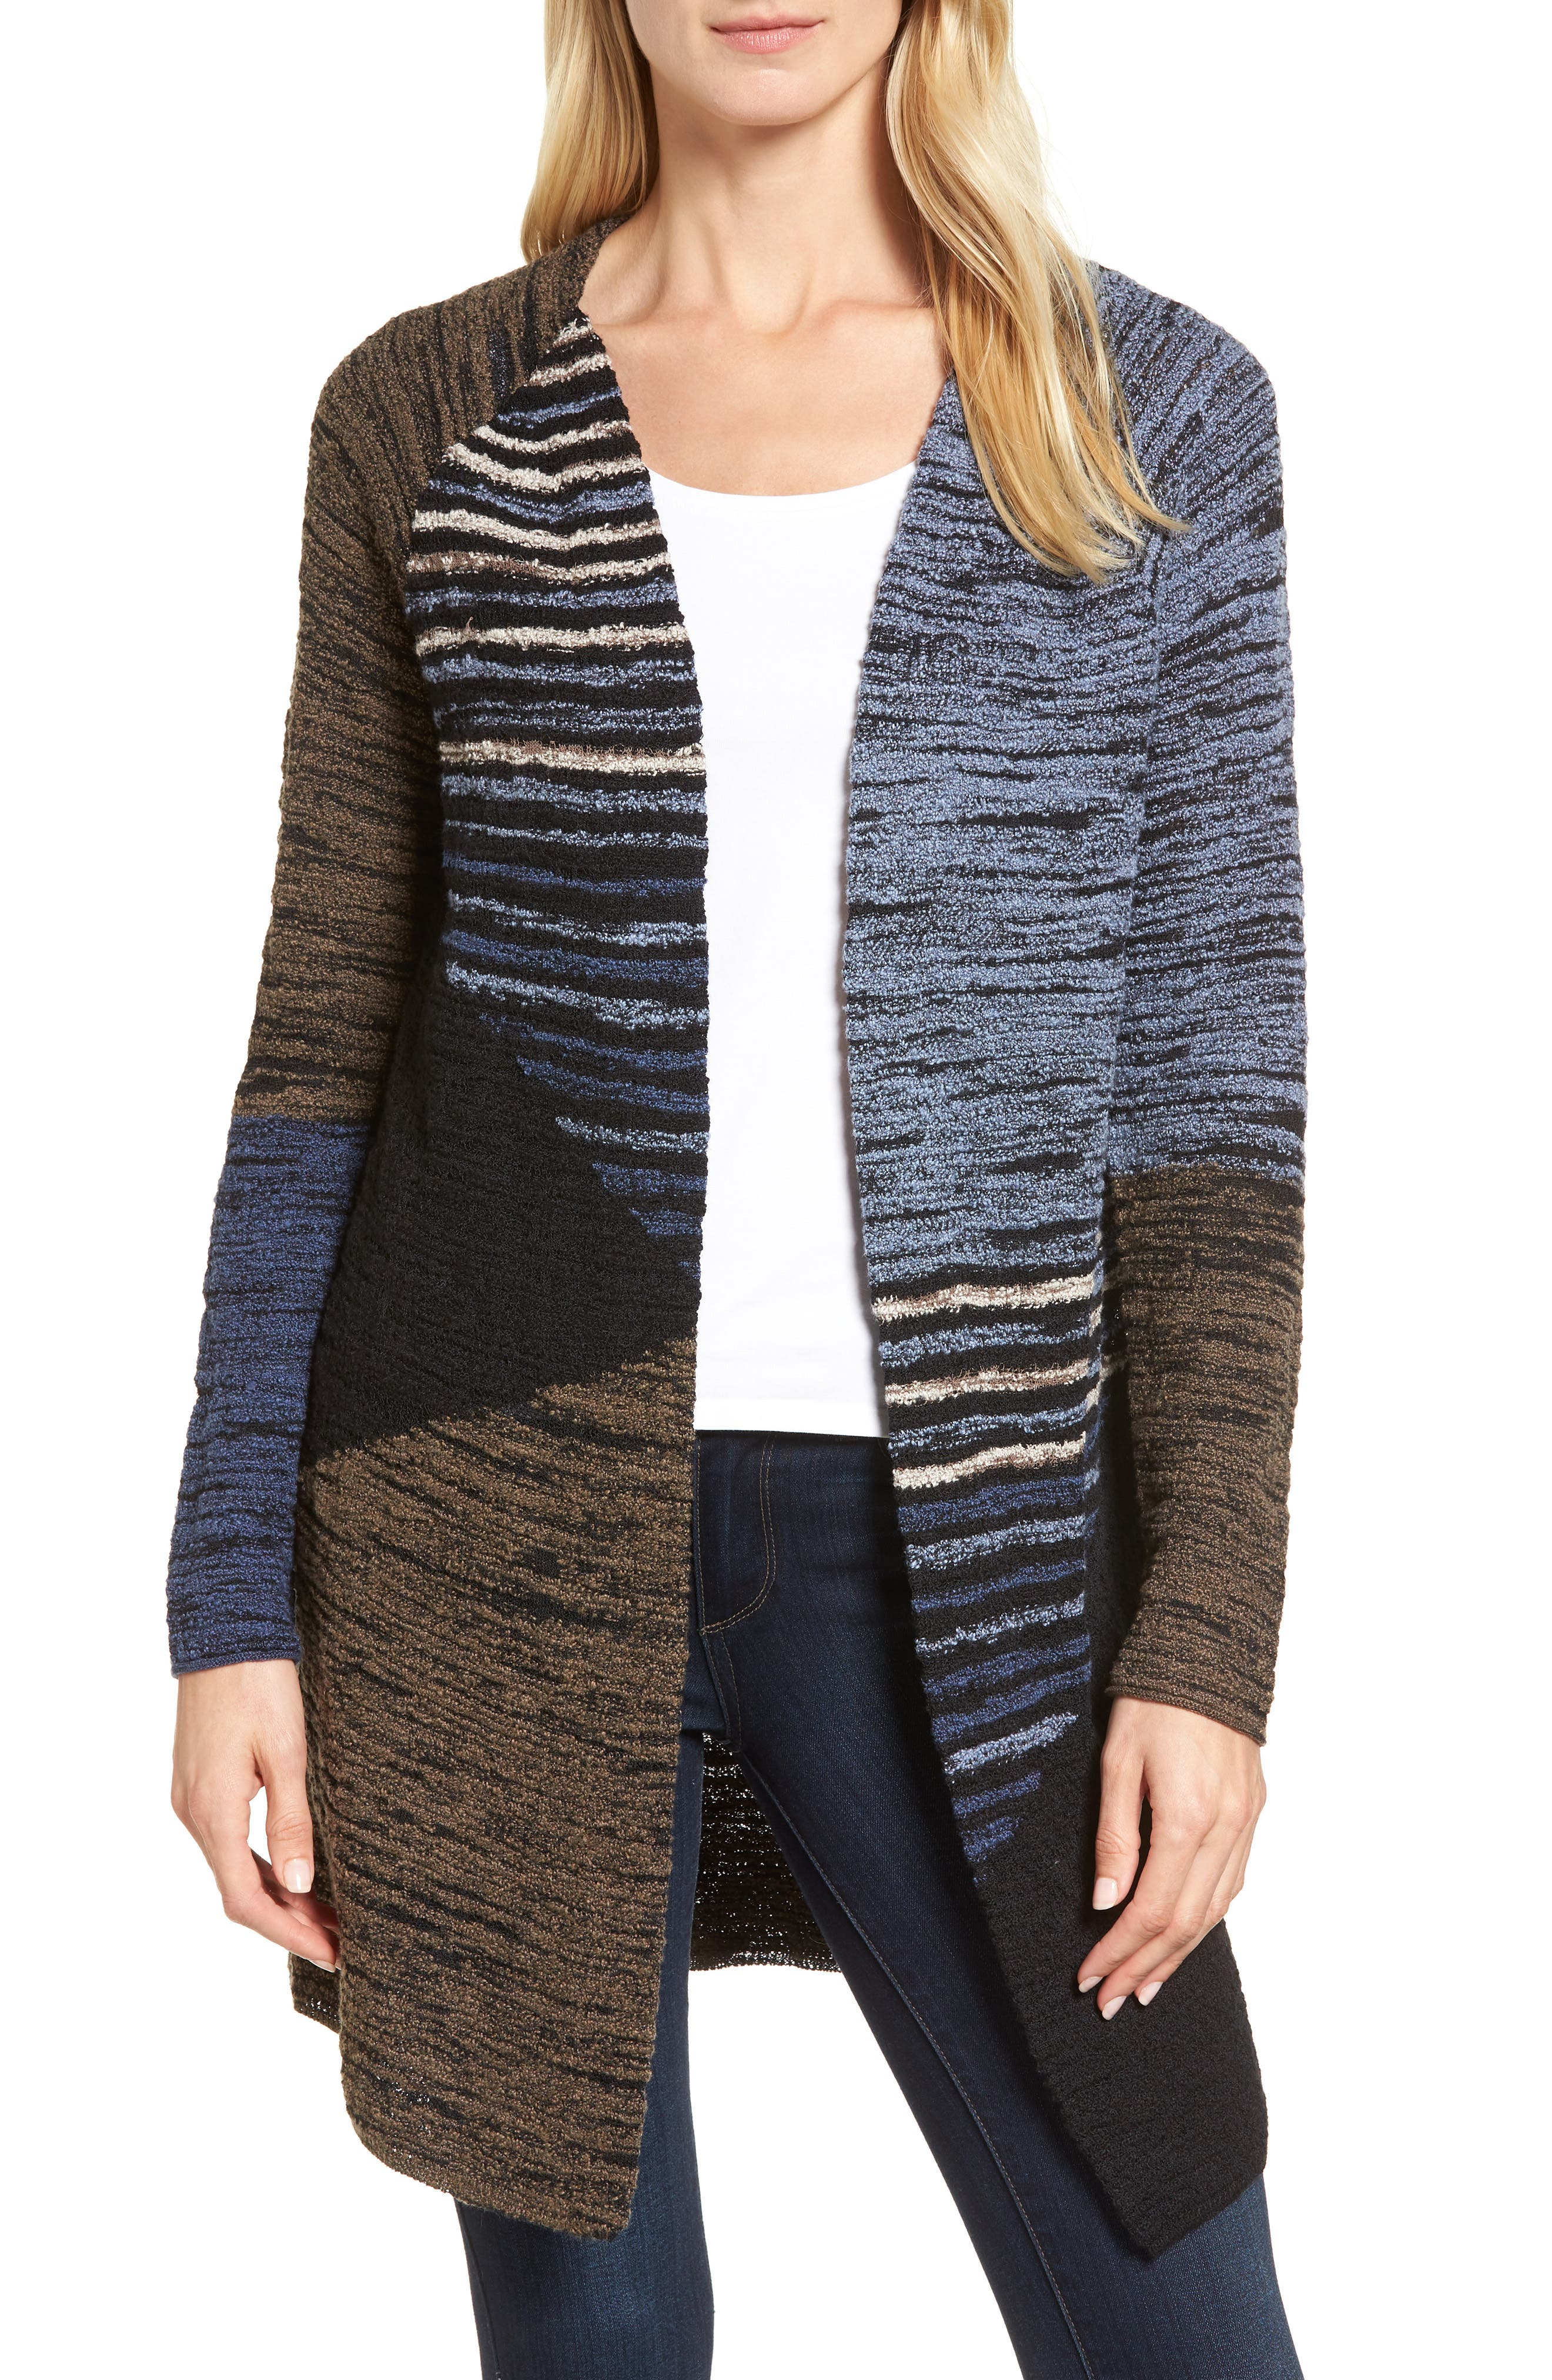 Alternate Image 1 Selected - NIC+ZOE Layover Cardigan (Regular & Petite)